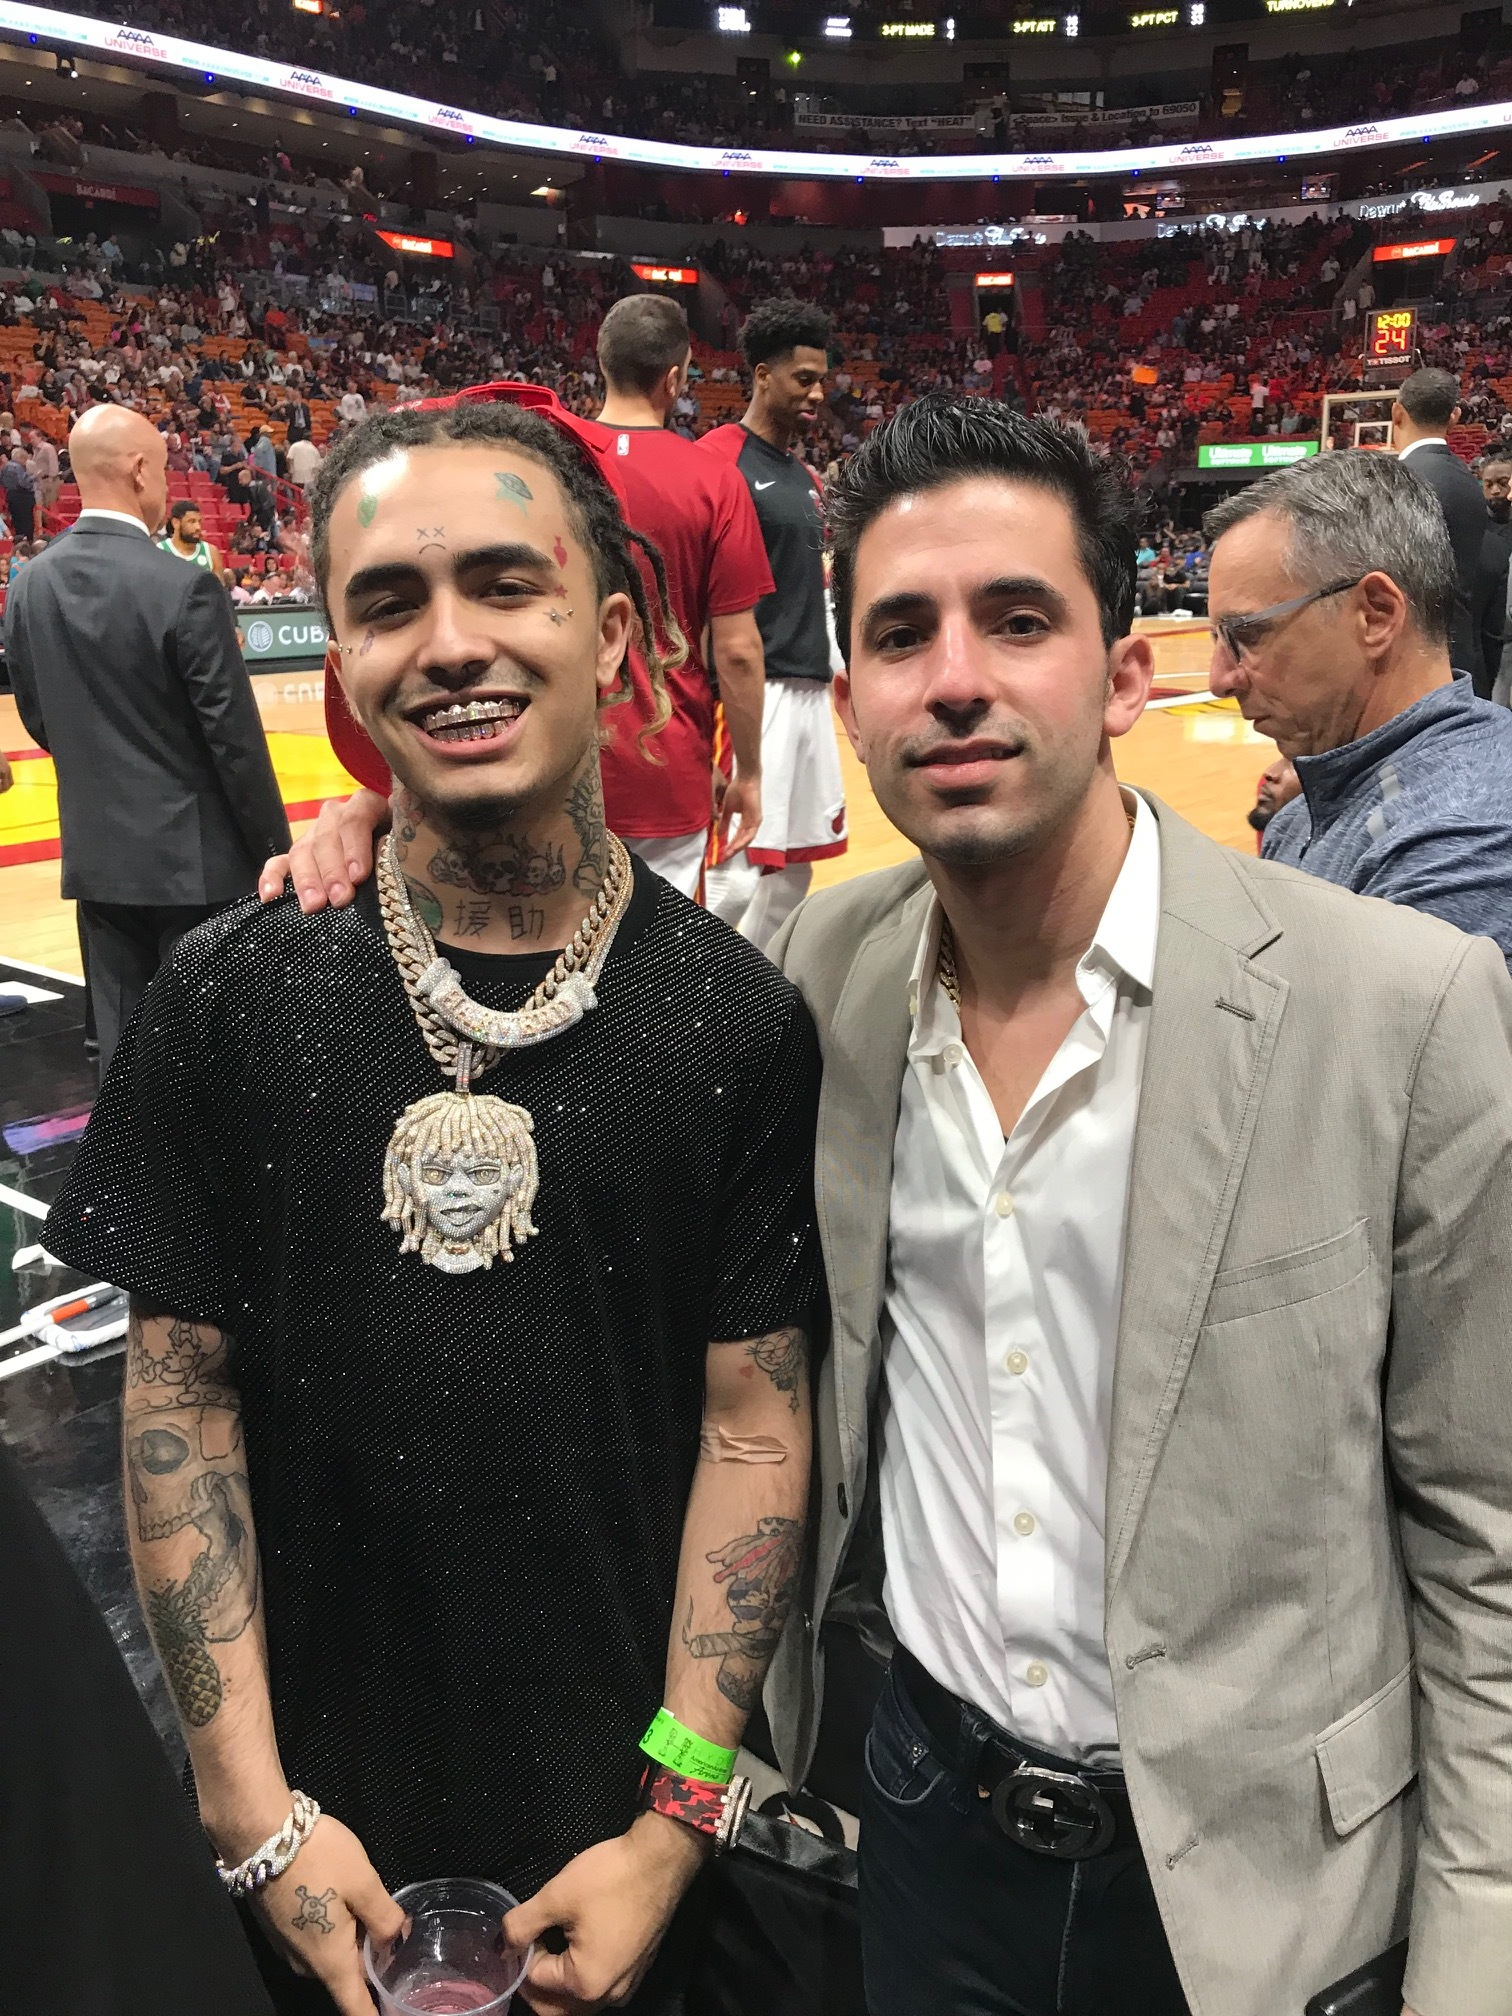 Lil Pump Courtside.jpg